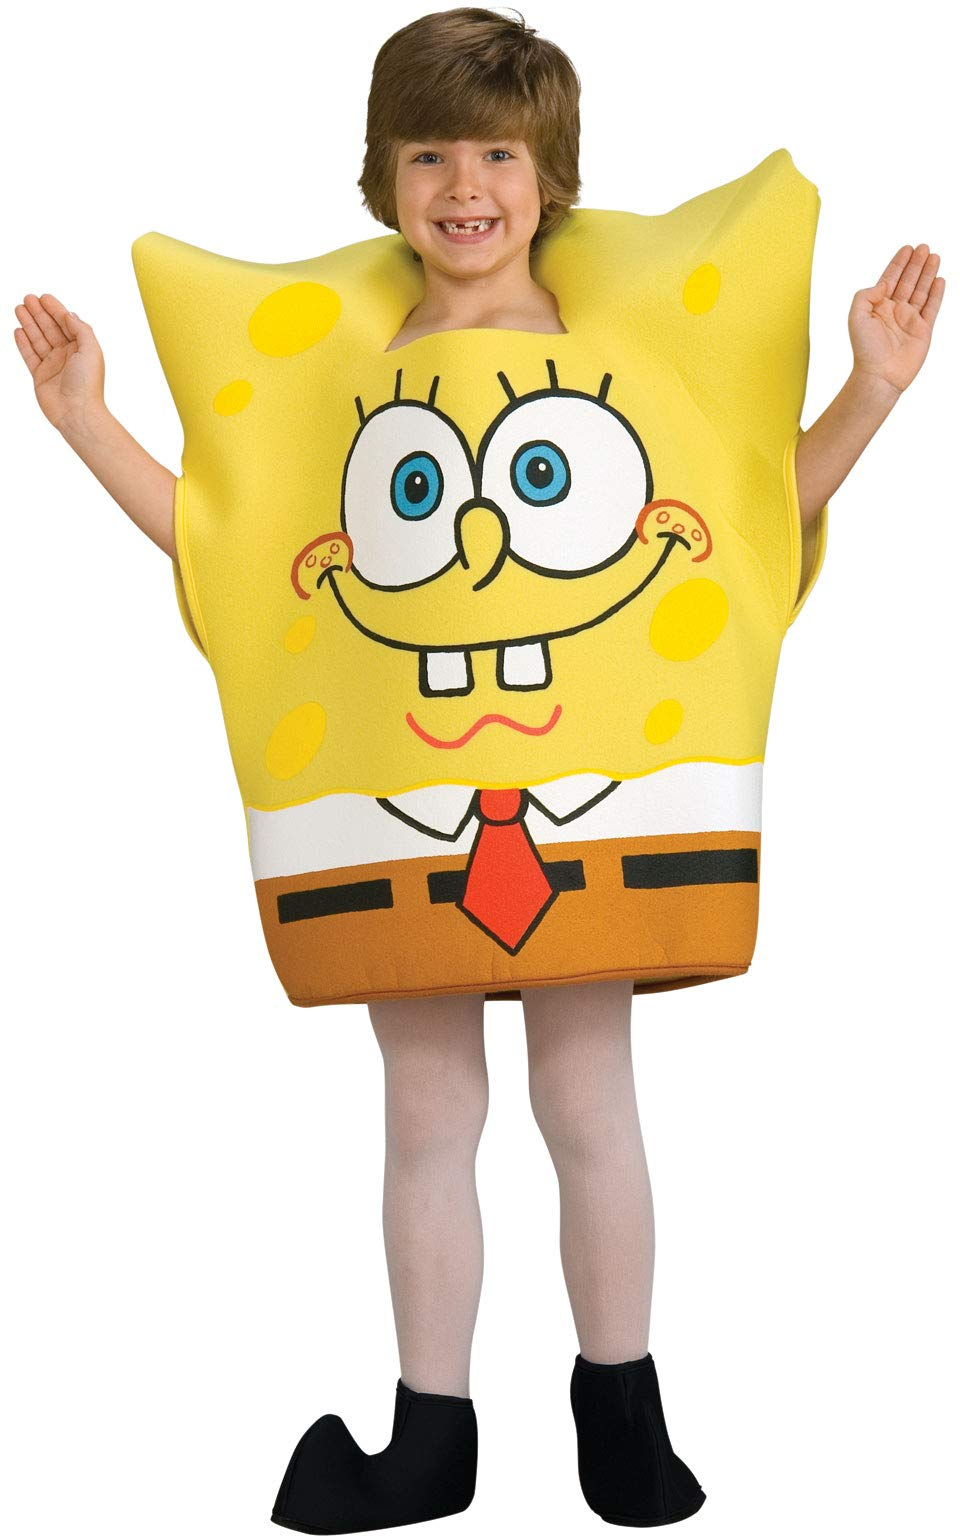 Spongebob Squarepants Child's Costume